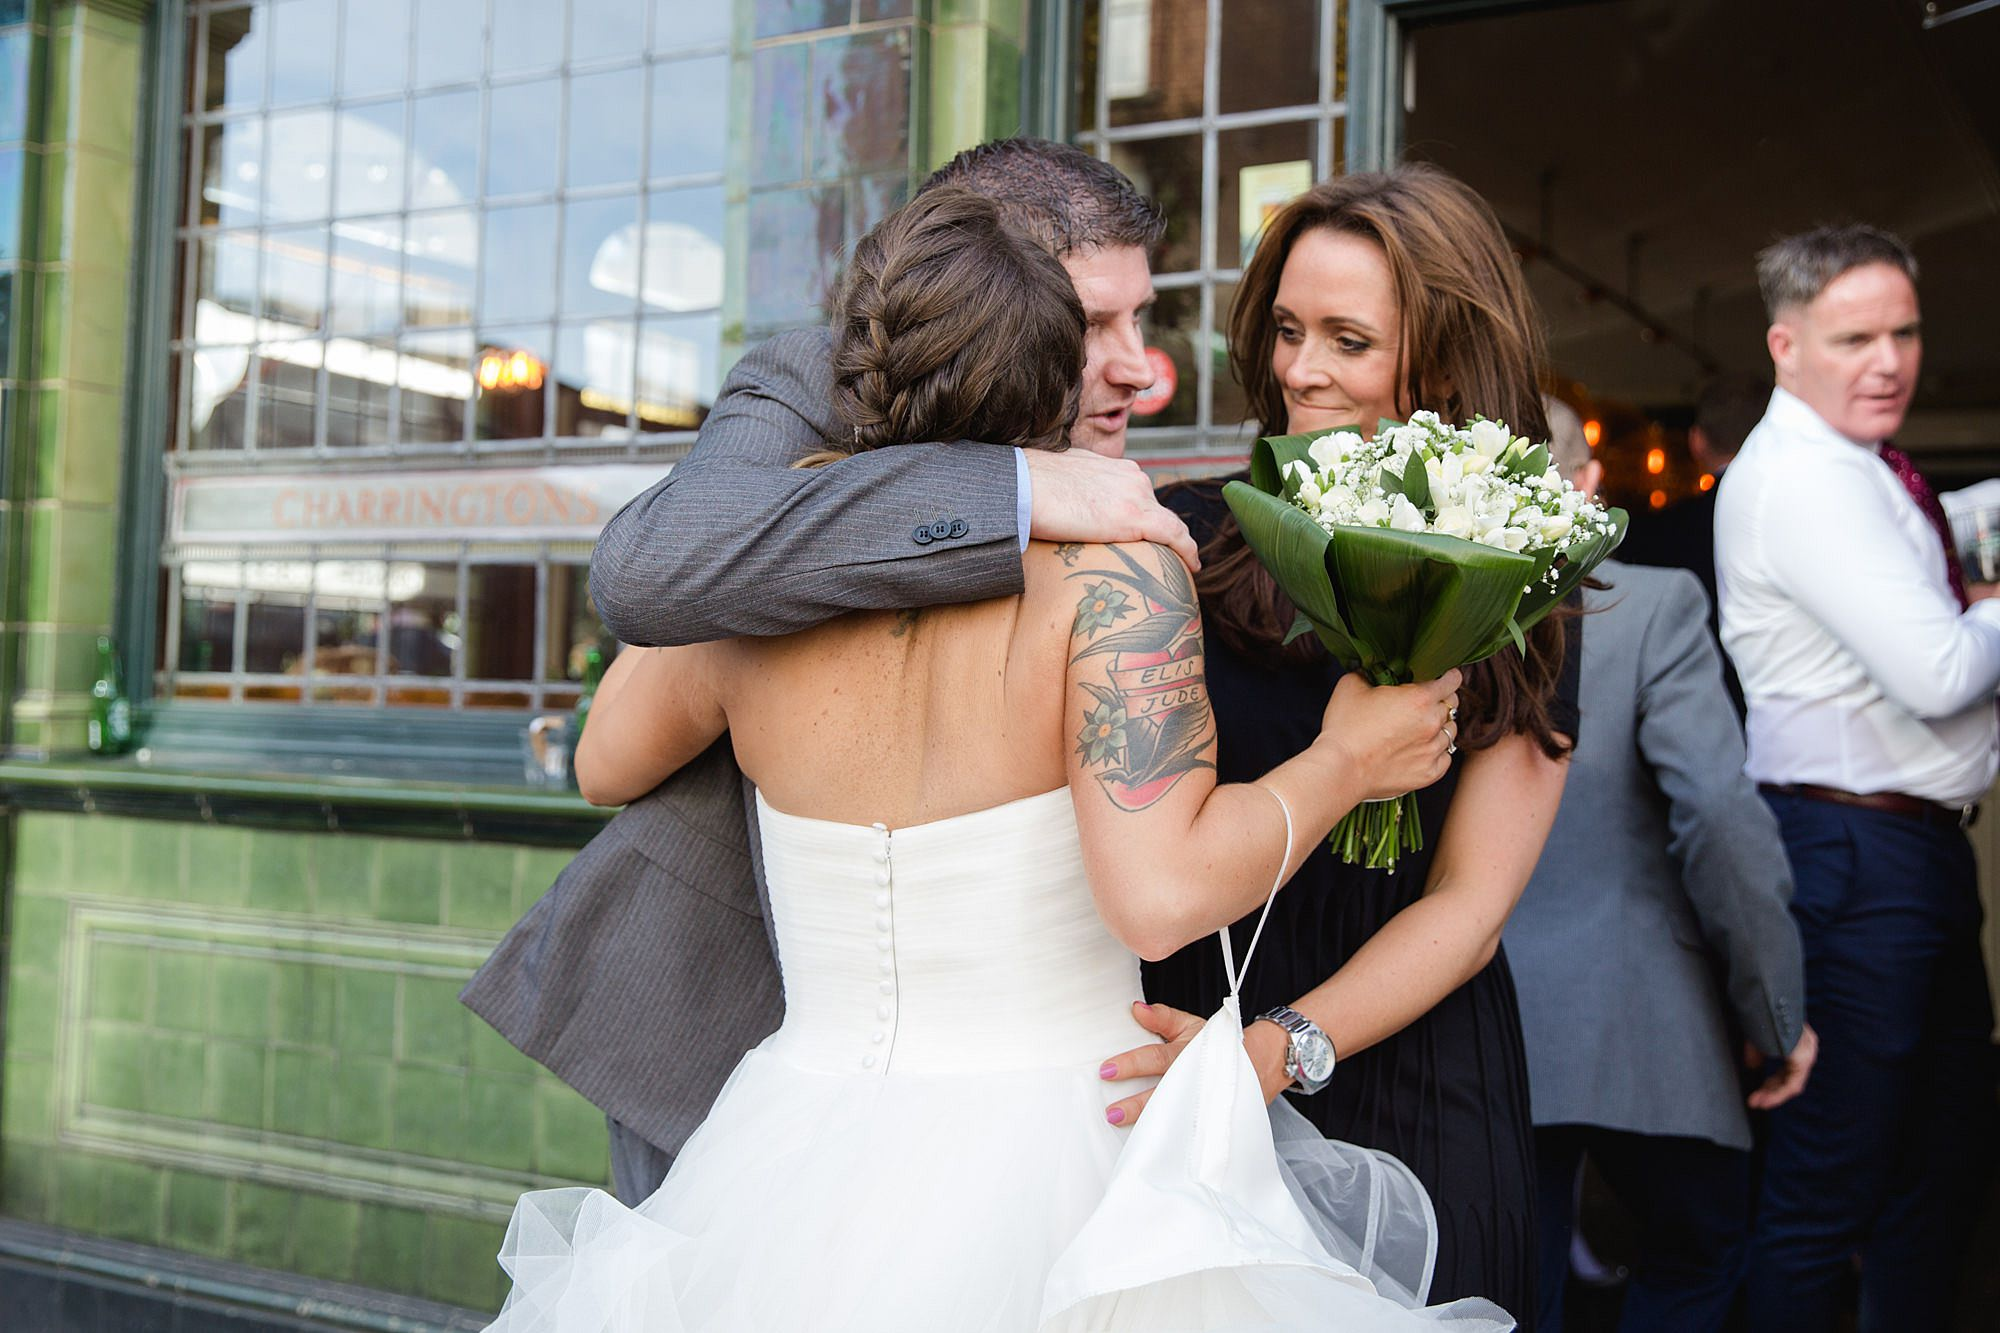 Prince albert camden wedding guest hugs bride